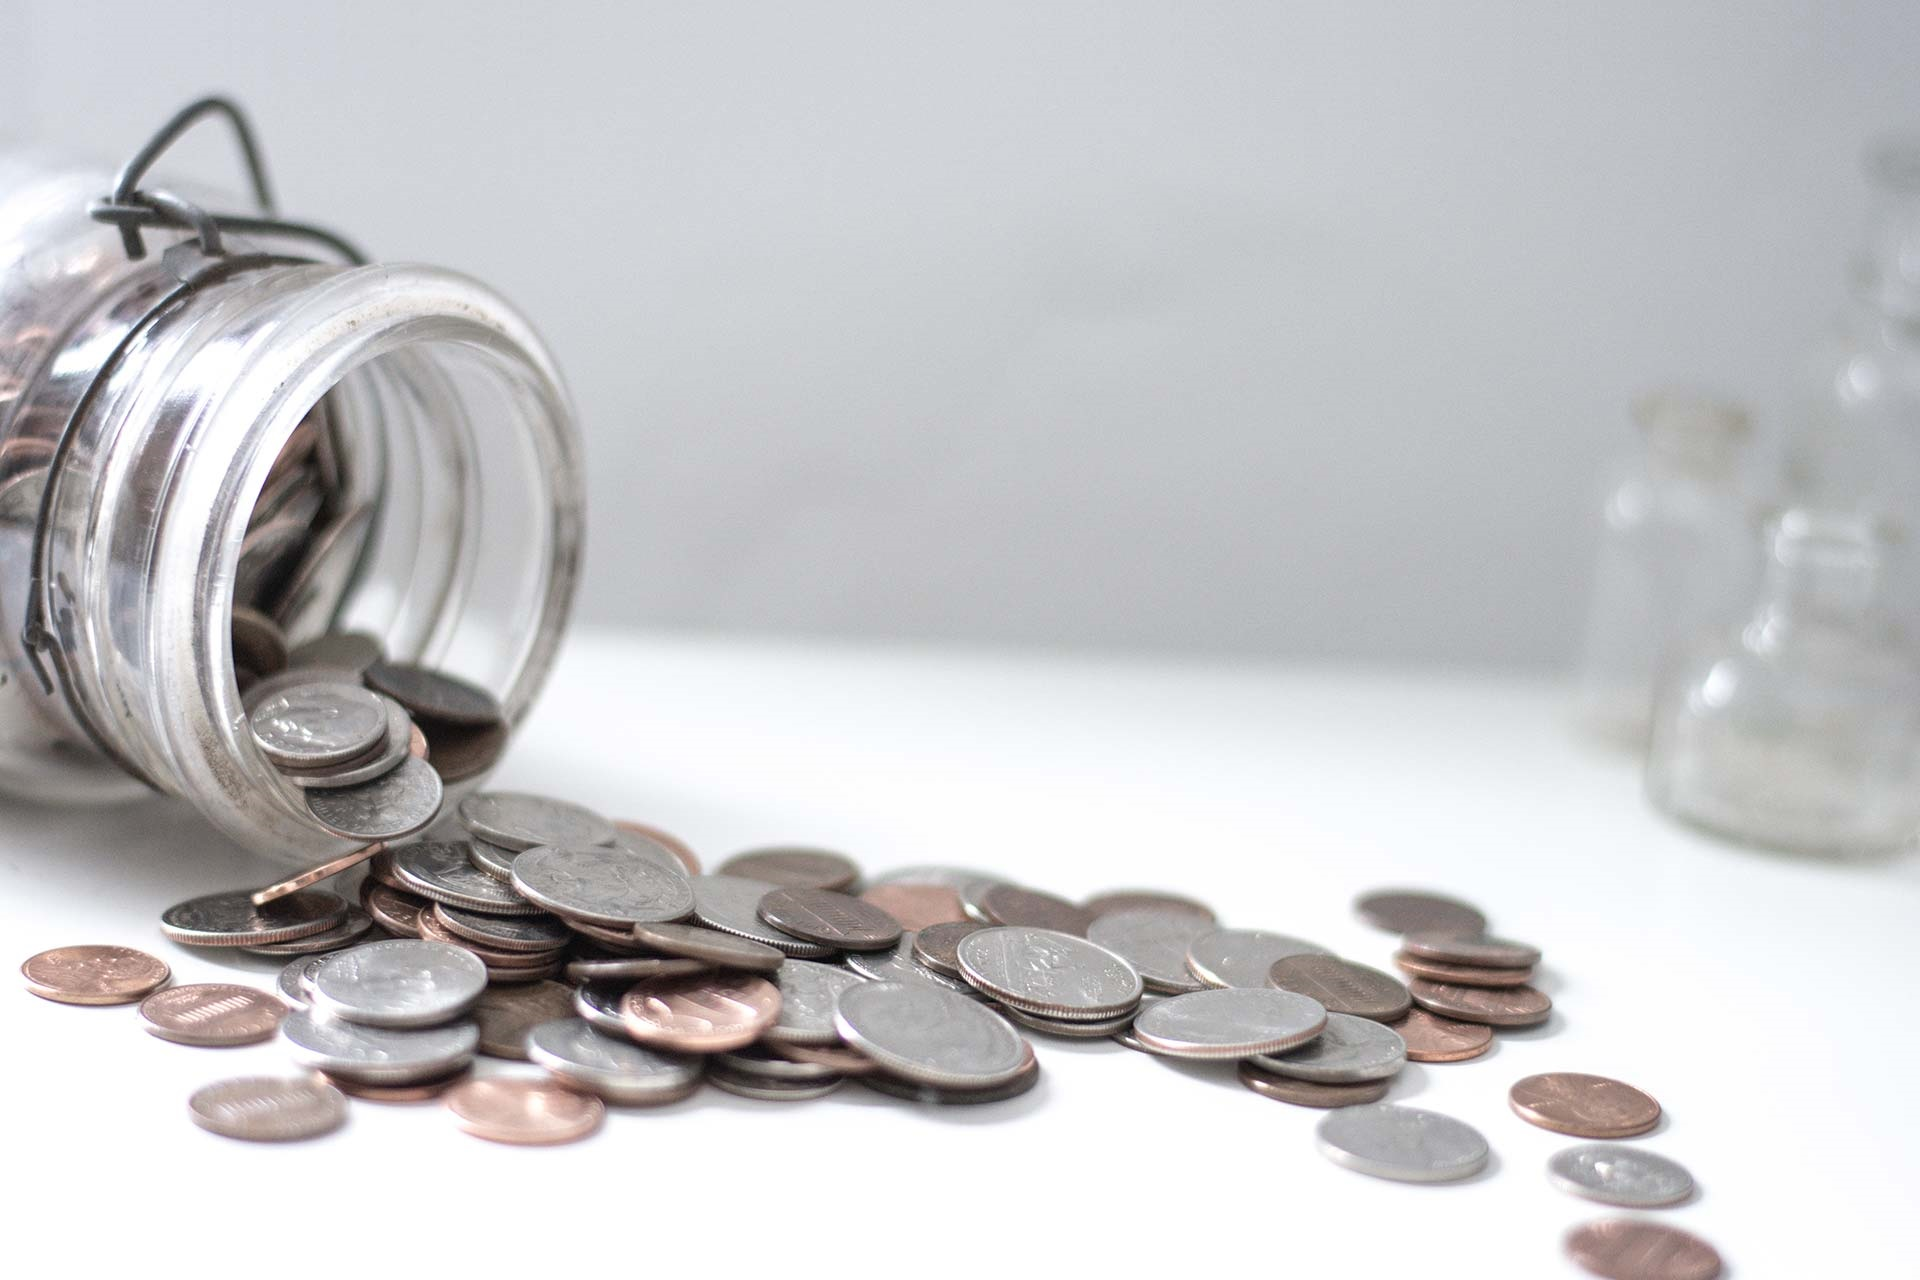 Coins in a jar depict saving money for retirement.